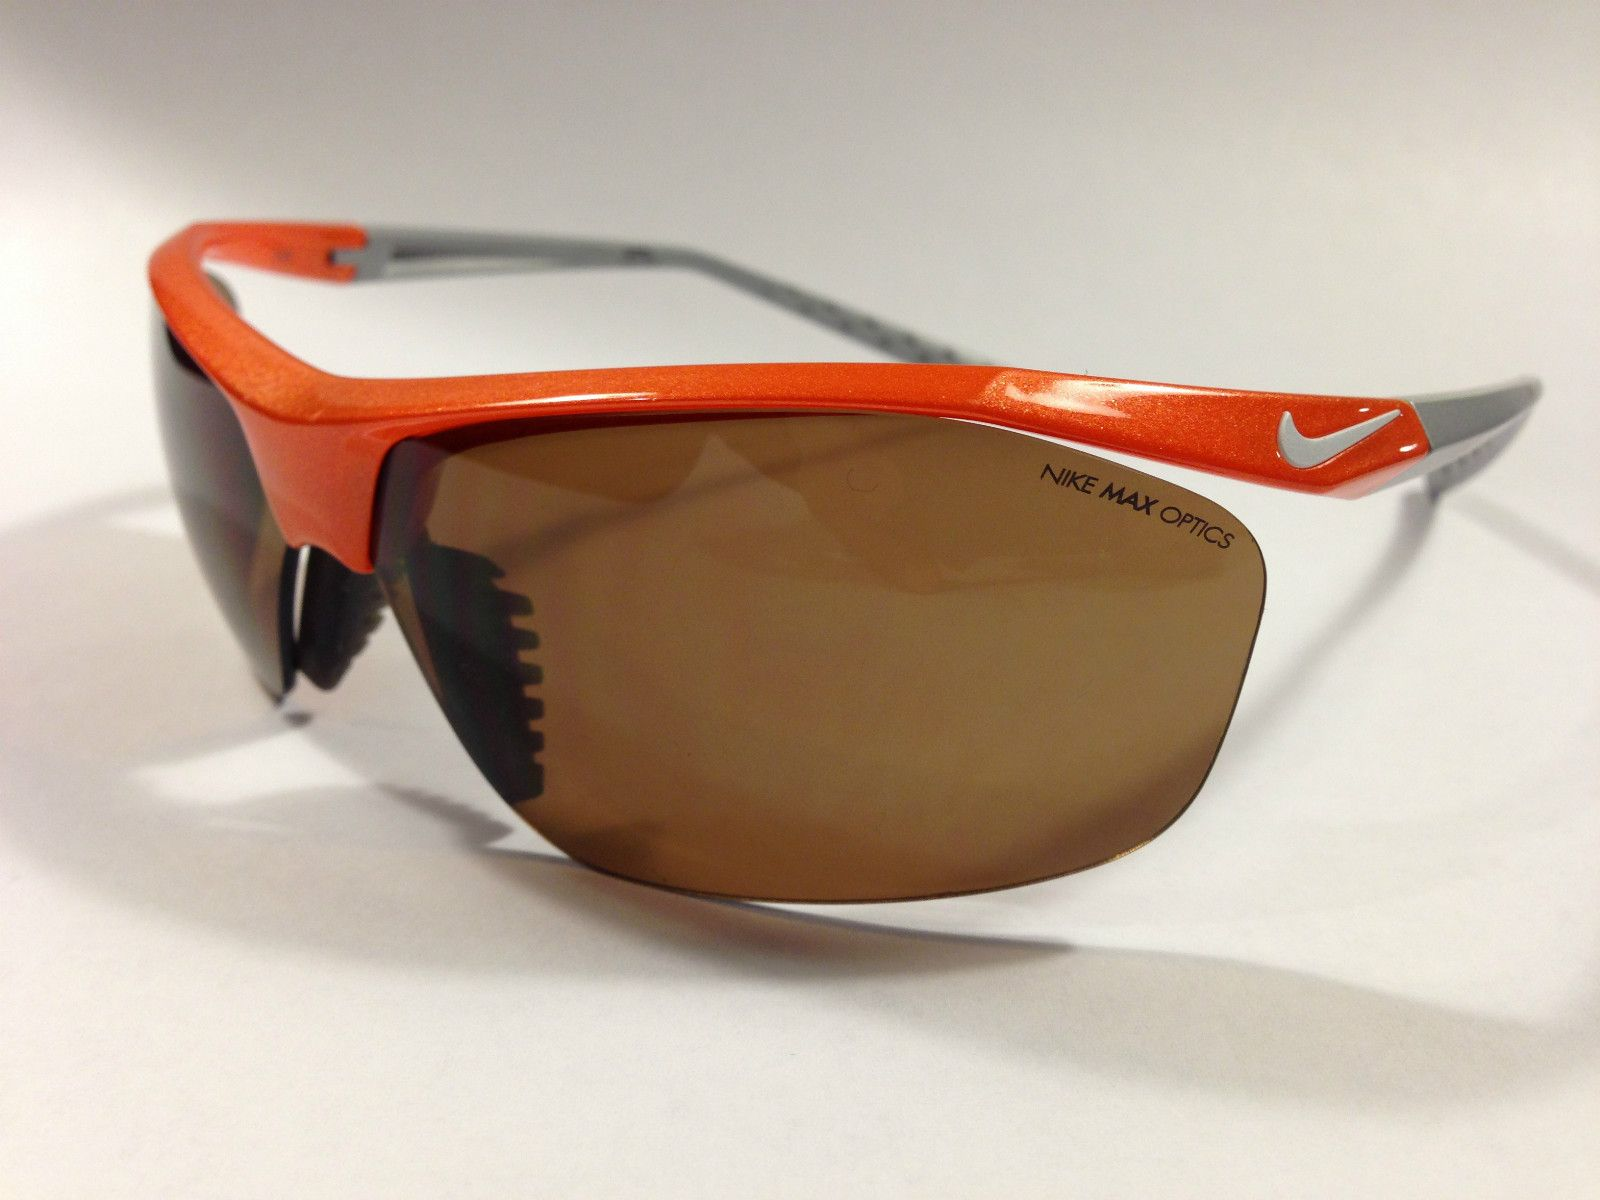 c0a4d122b01 Nike Sunglasses (Max Optics Tailwind Interchangeable